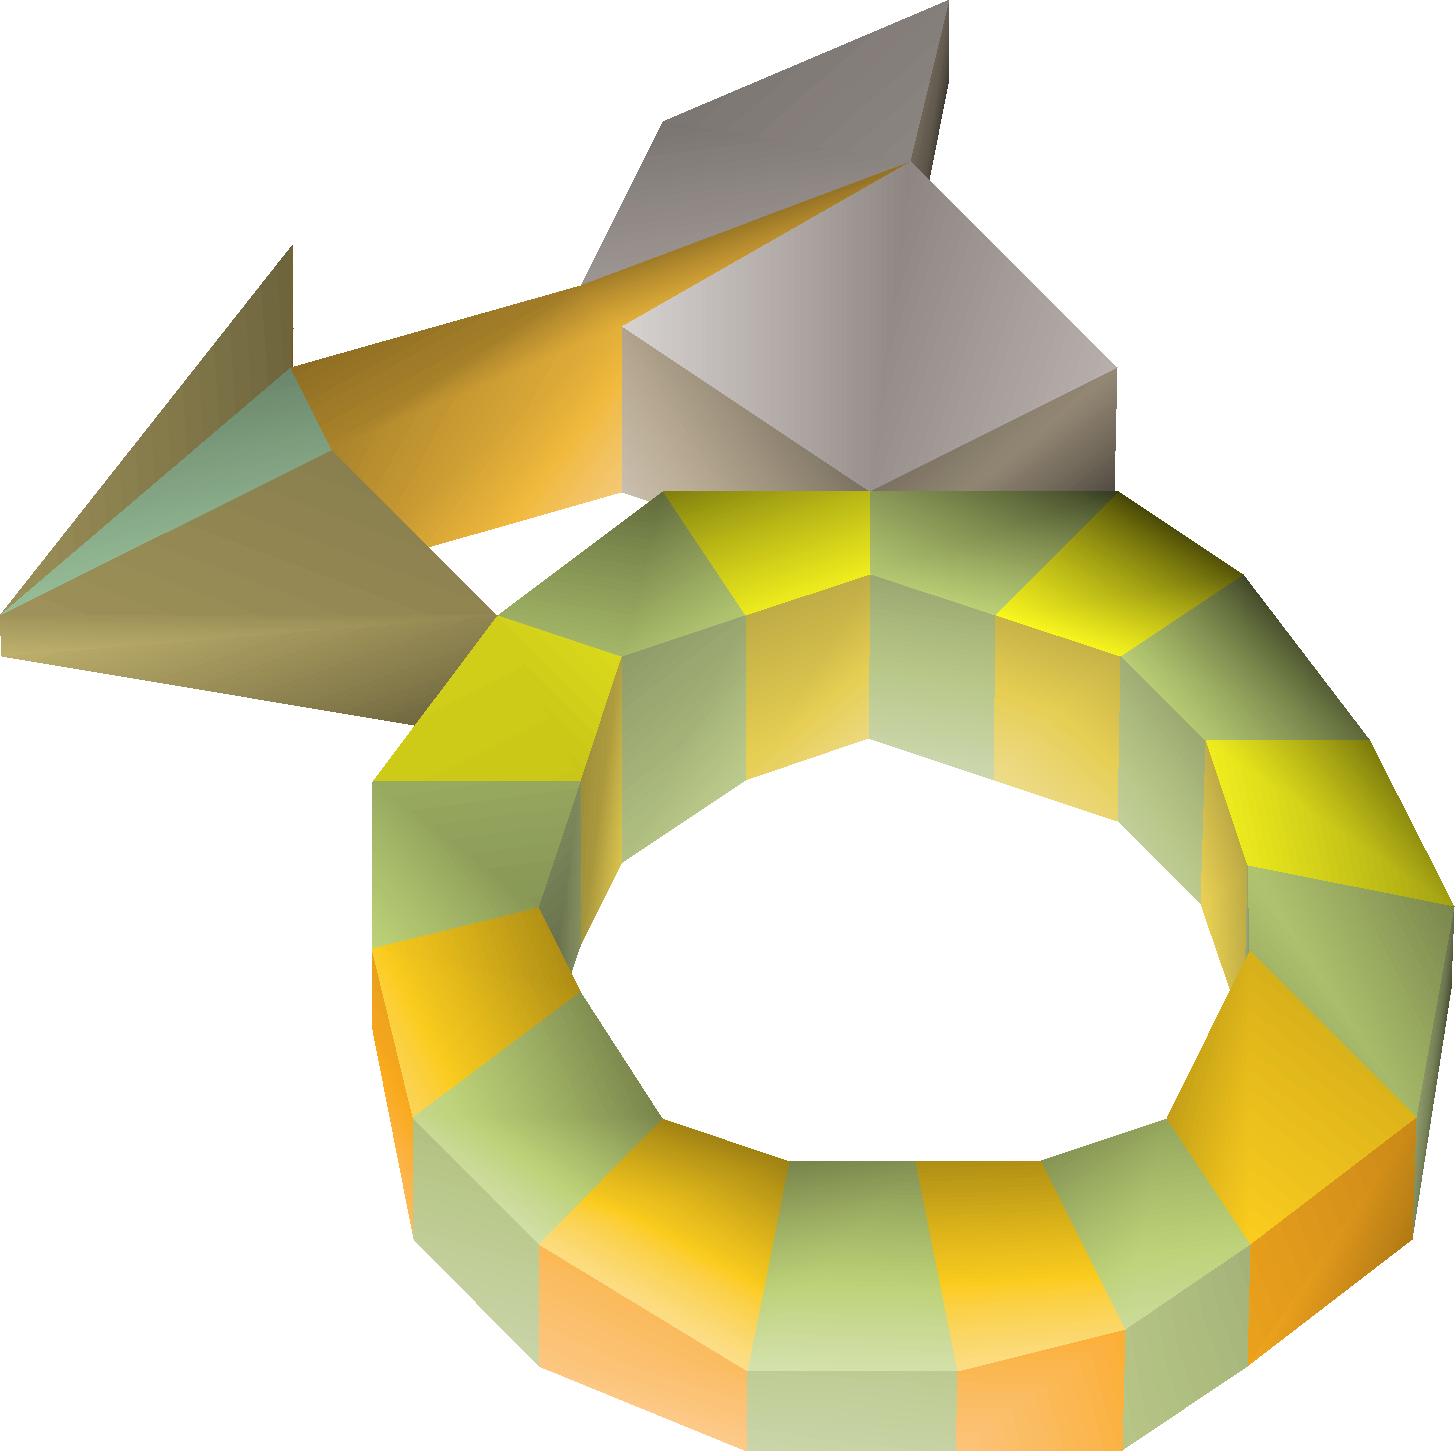 Archers ring (i) - OSRS Wiki